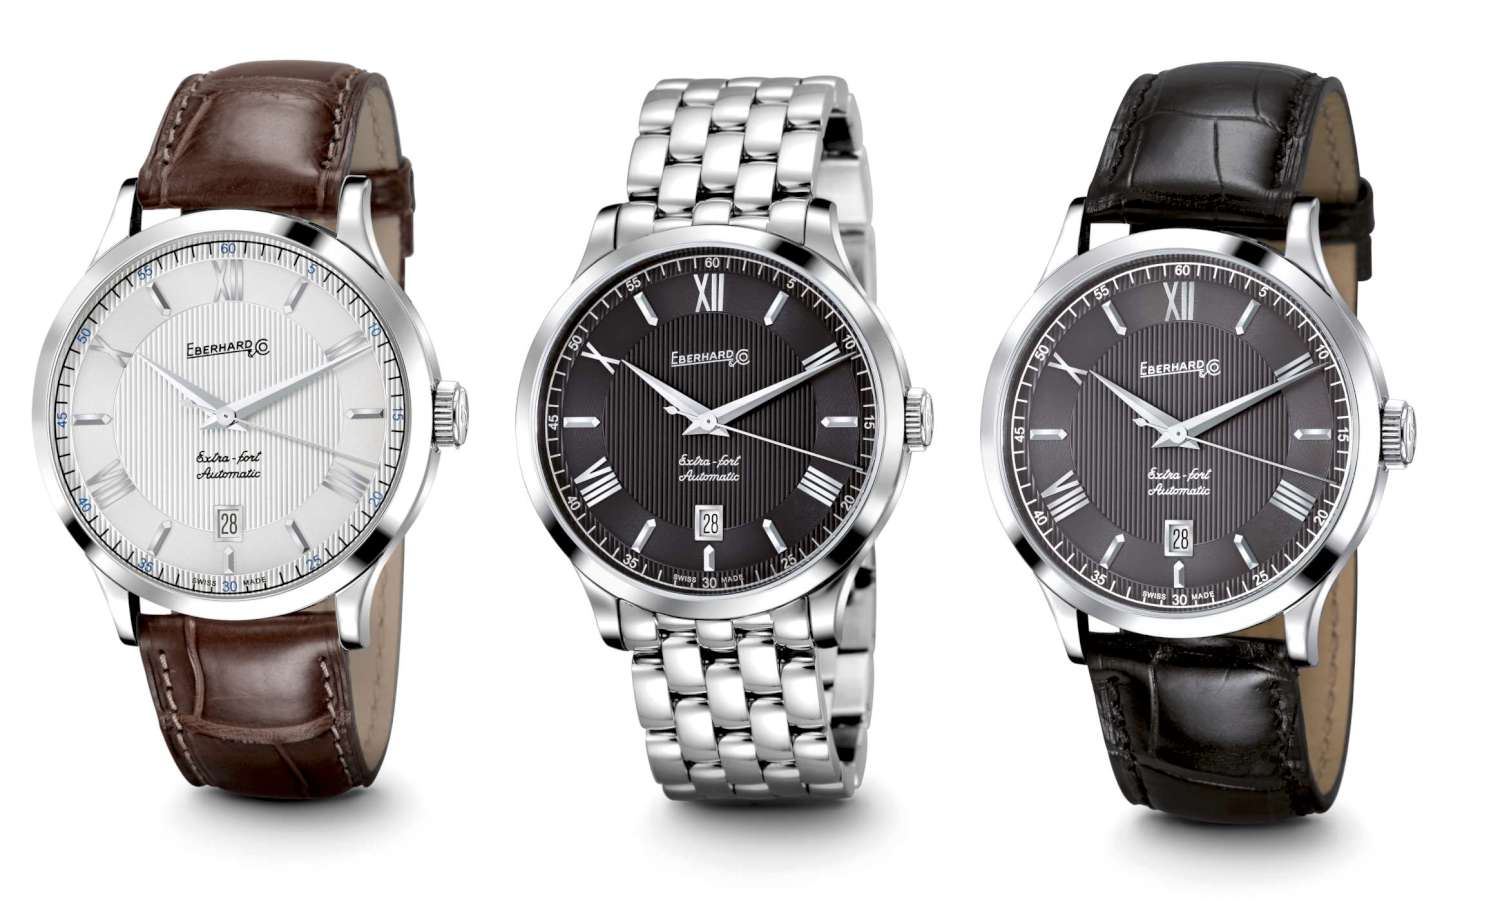 EXTRA FORT AUTOMATIC three watches-1500